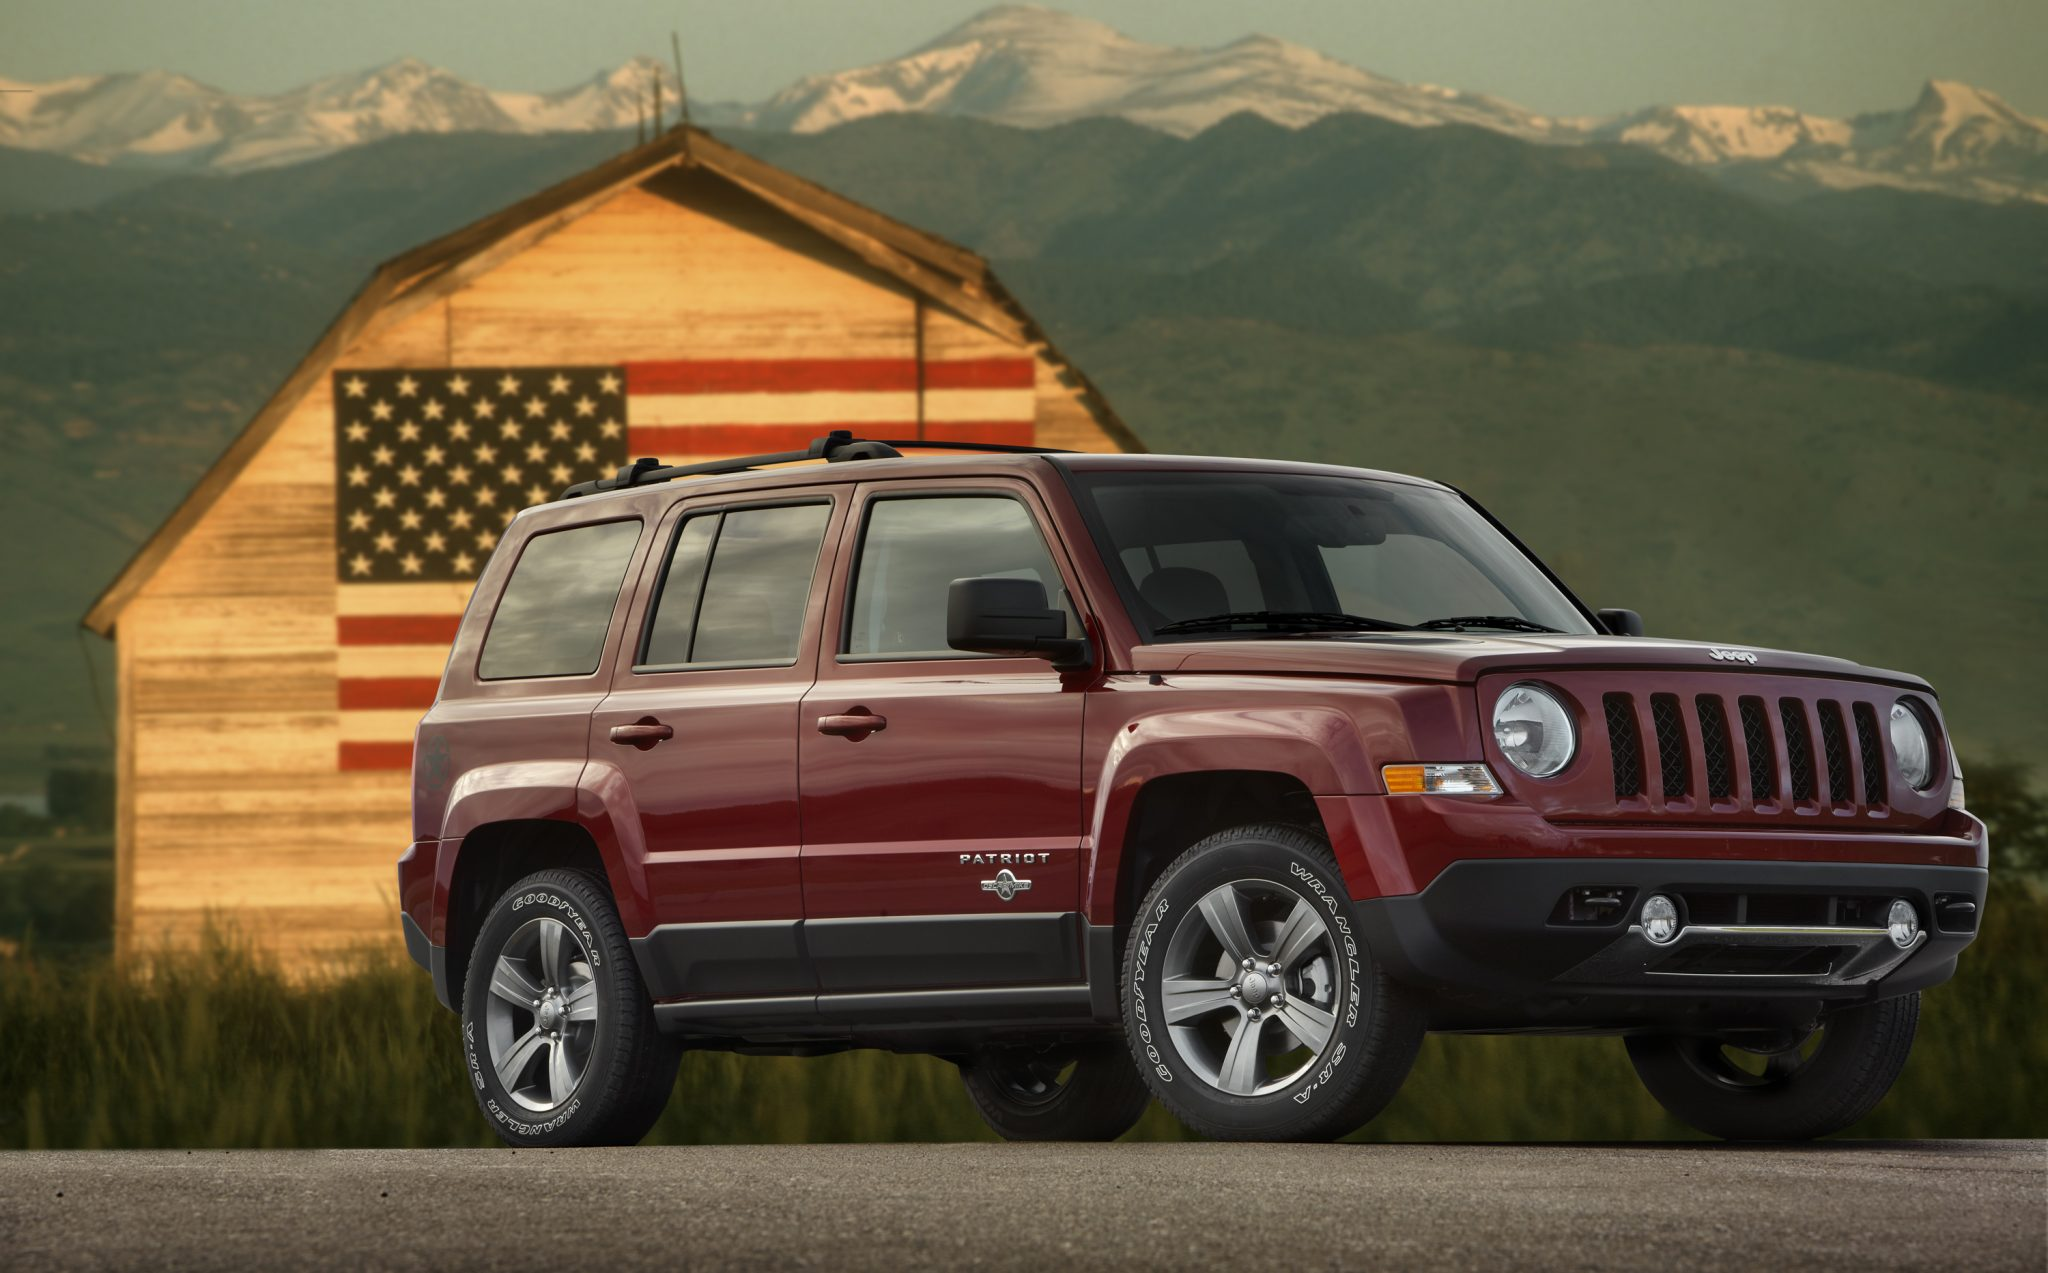 2013 Jeep Patriot overview